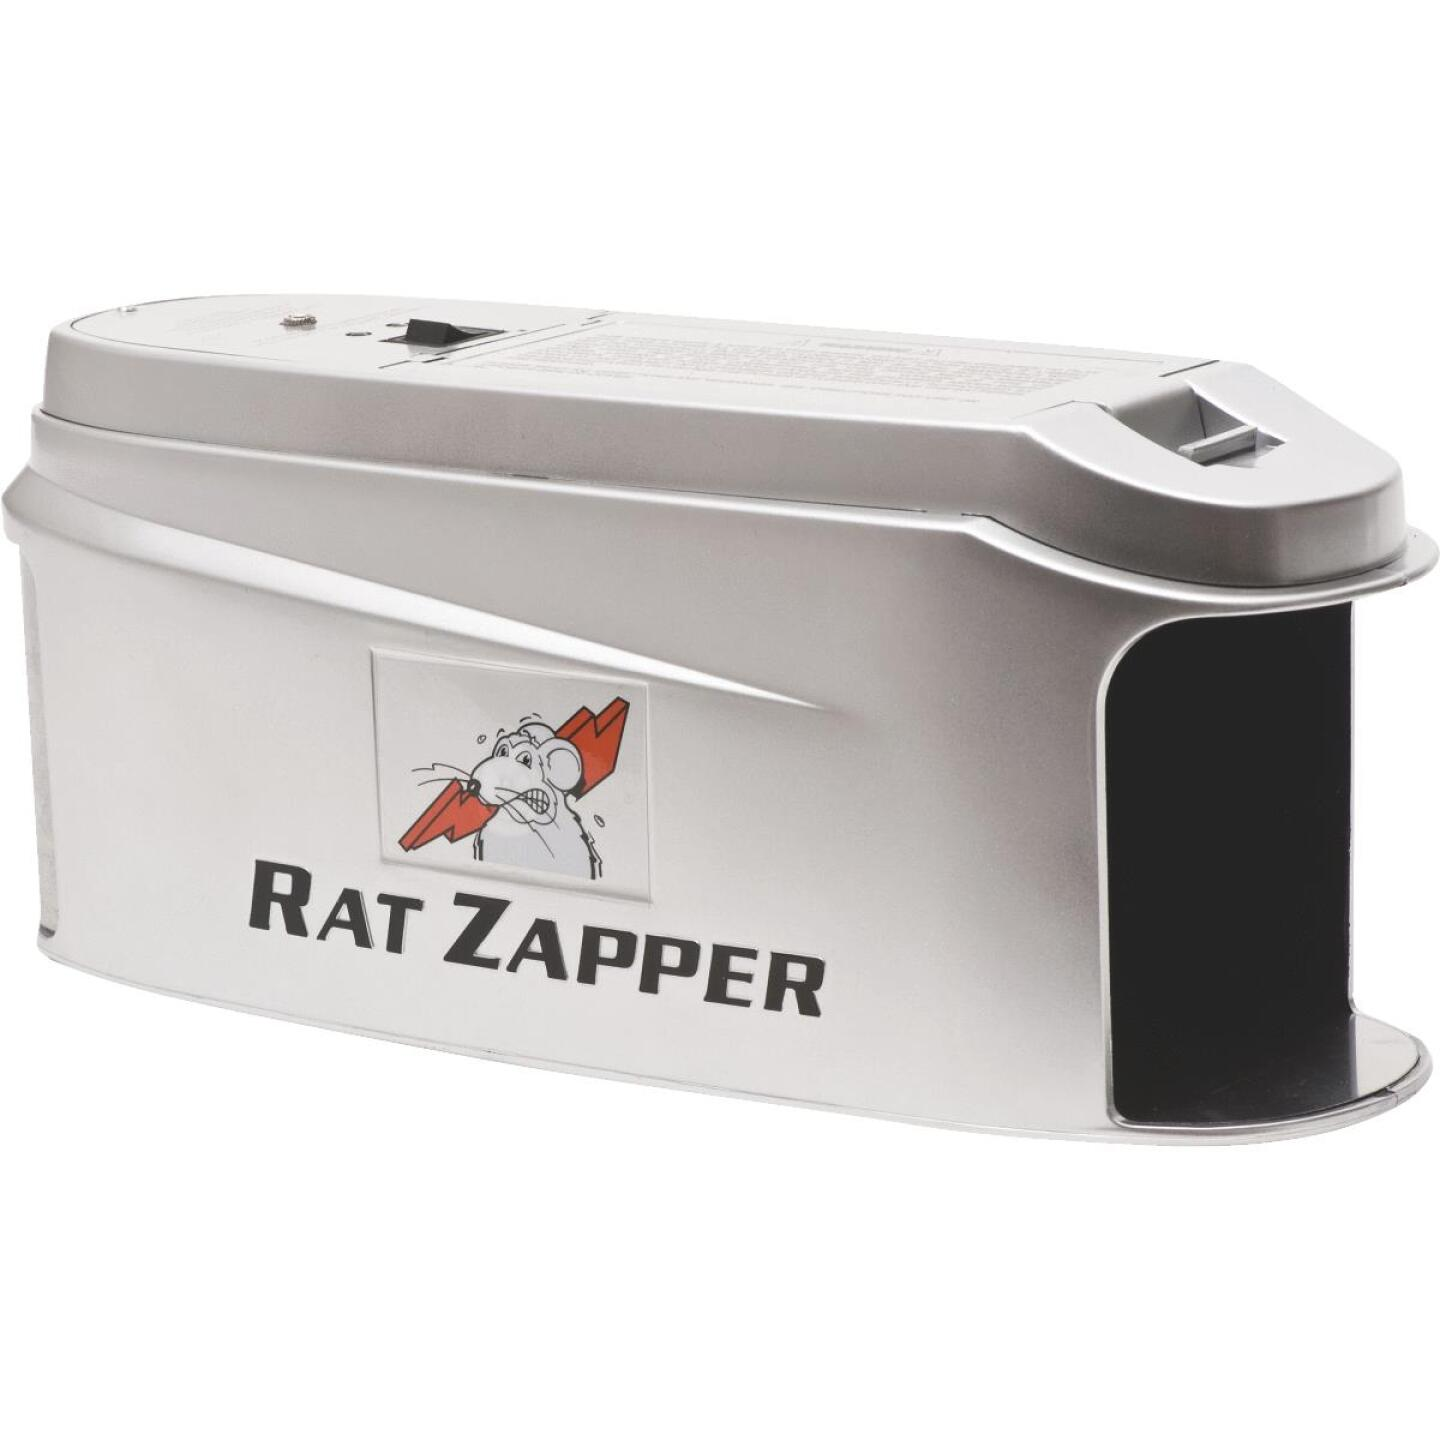 Victor Ultra Rat Zapper Battery Operated Electronic Rat Trap Image 1